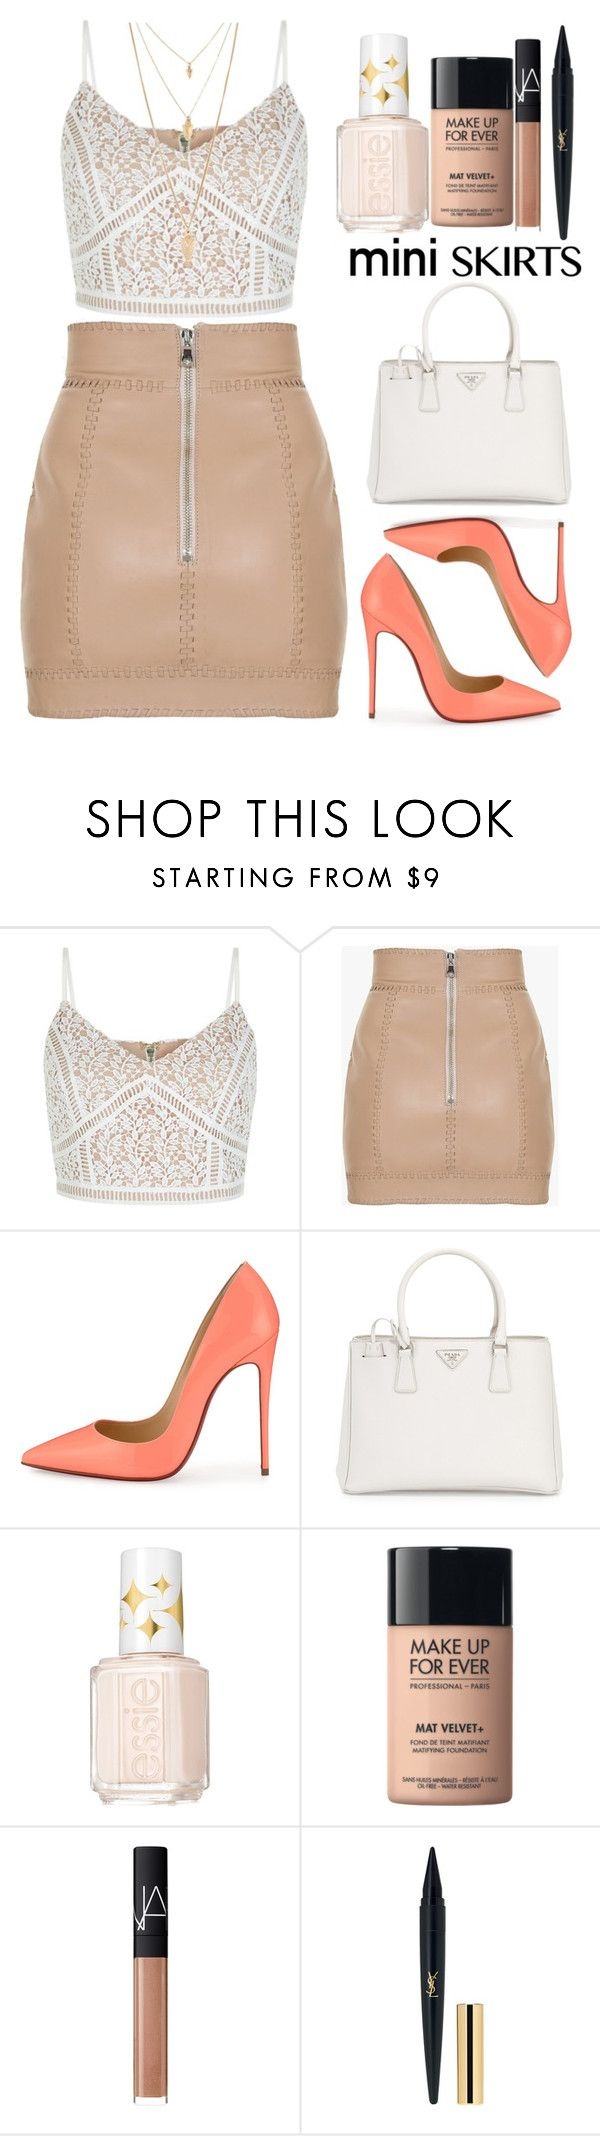 """Mini Me: Cute Skirts"" by lovesammi98 ❤ liked on Polyvore featuring Balmain, Christian Louboutin, Prada, Essie, MAKE UP FOR EVER, NARS Cosmetics and Forever 21"